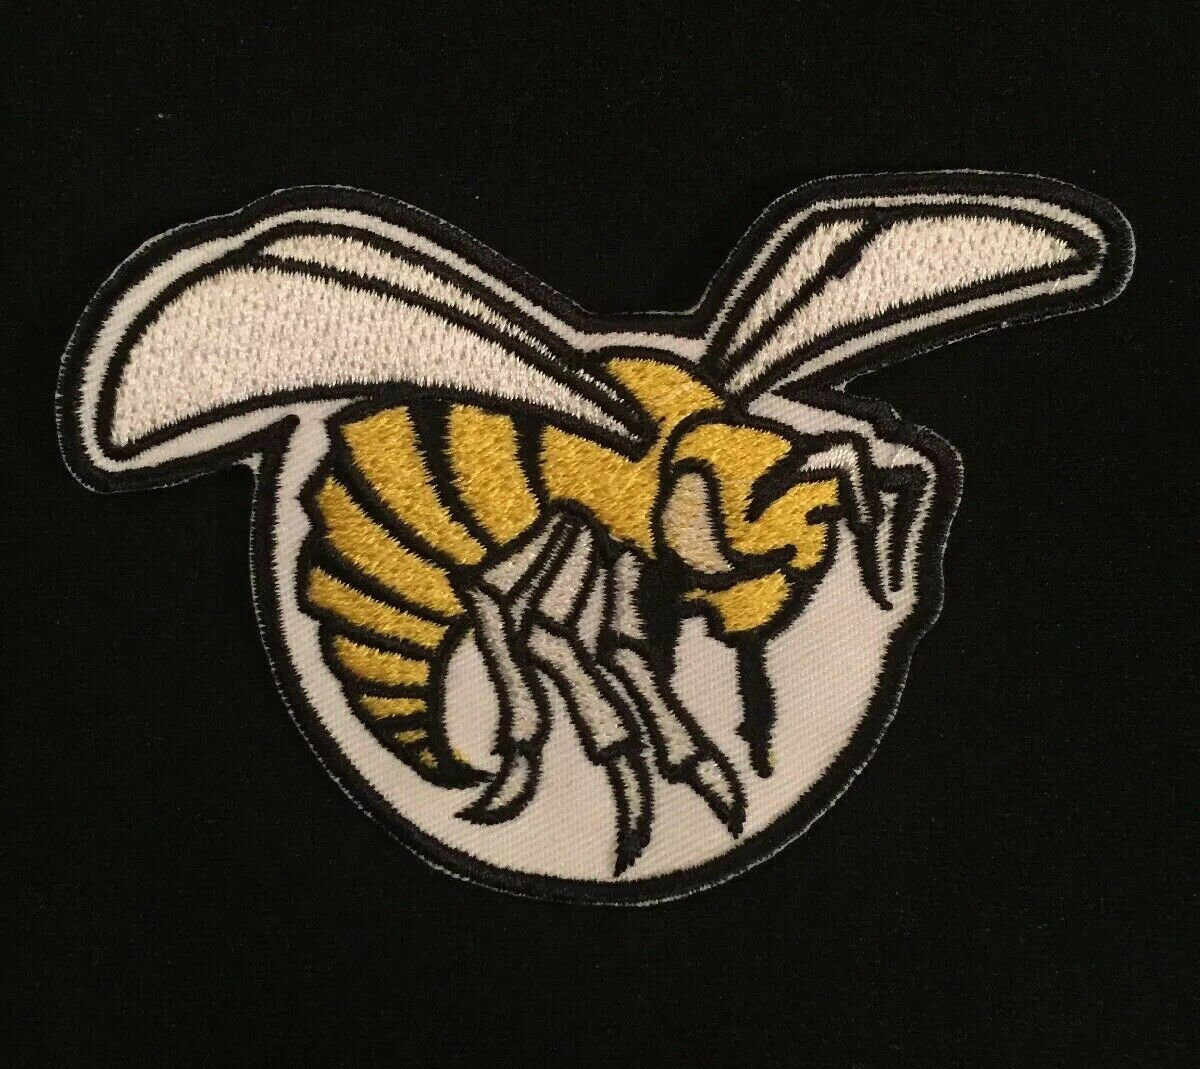 Primary image for Alabama State Hornets College Football Logo Iron on Patch Badge Sewn Emblem